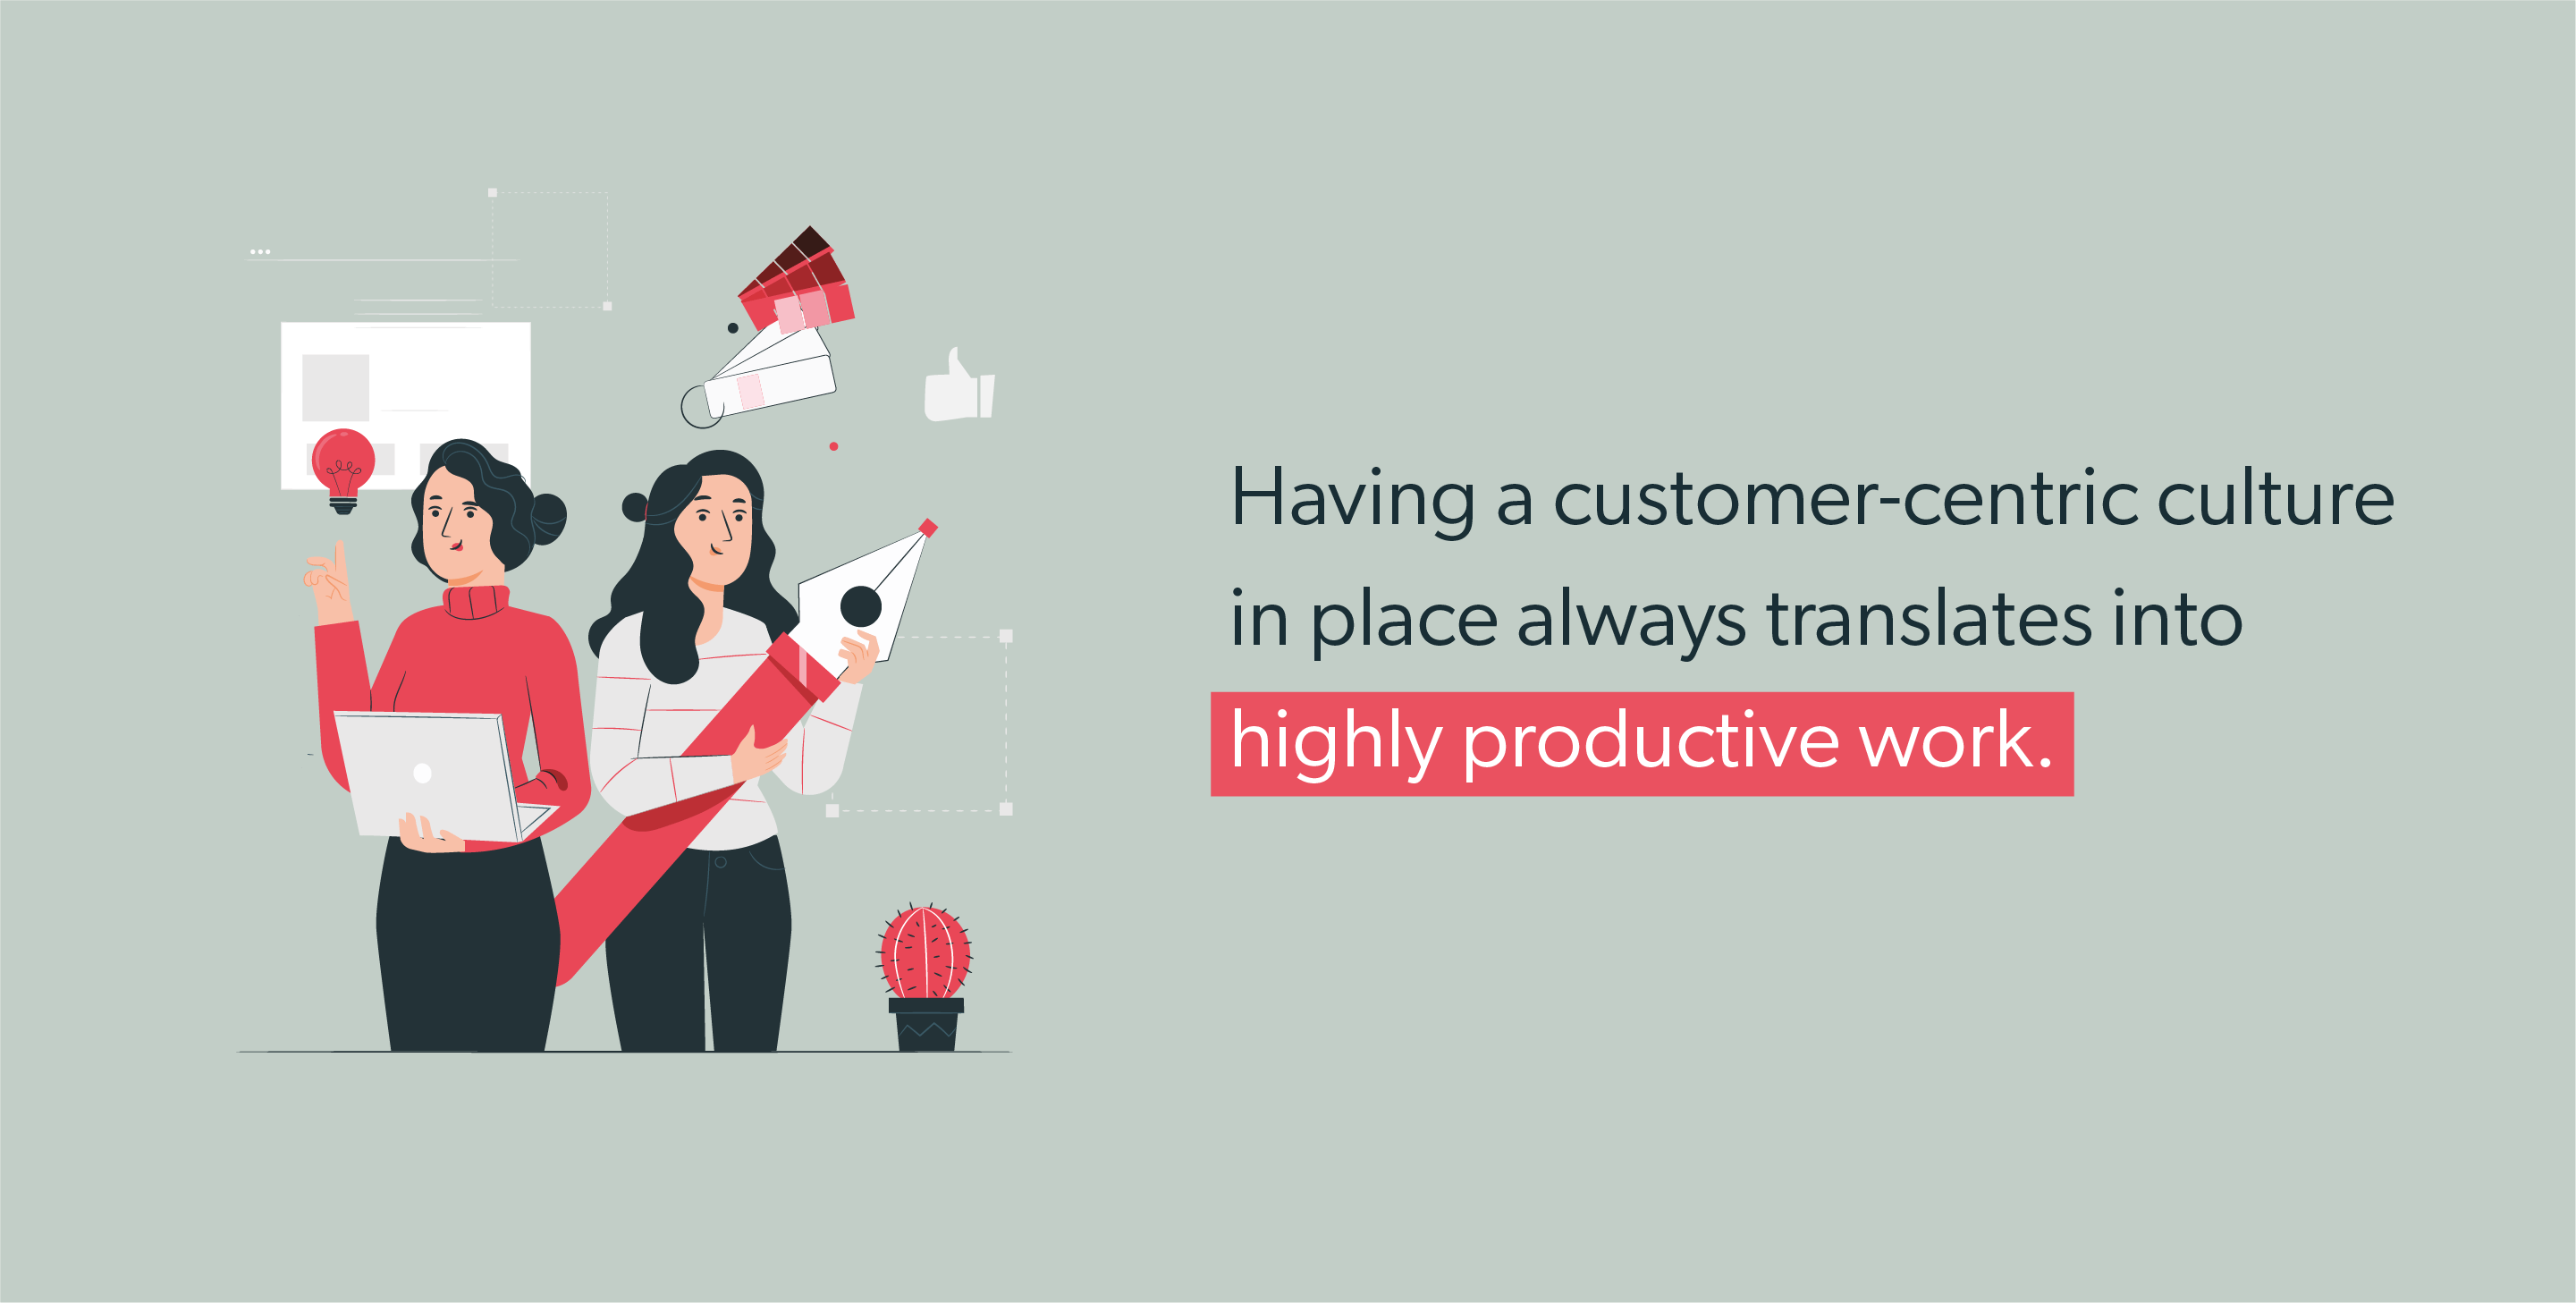 Having a customer-centric culture in place always translates into highly productive work.